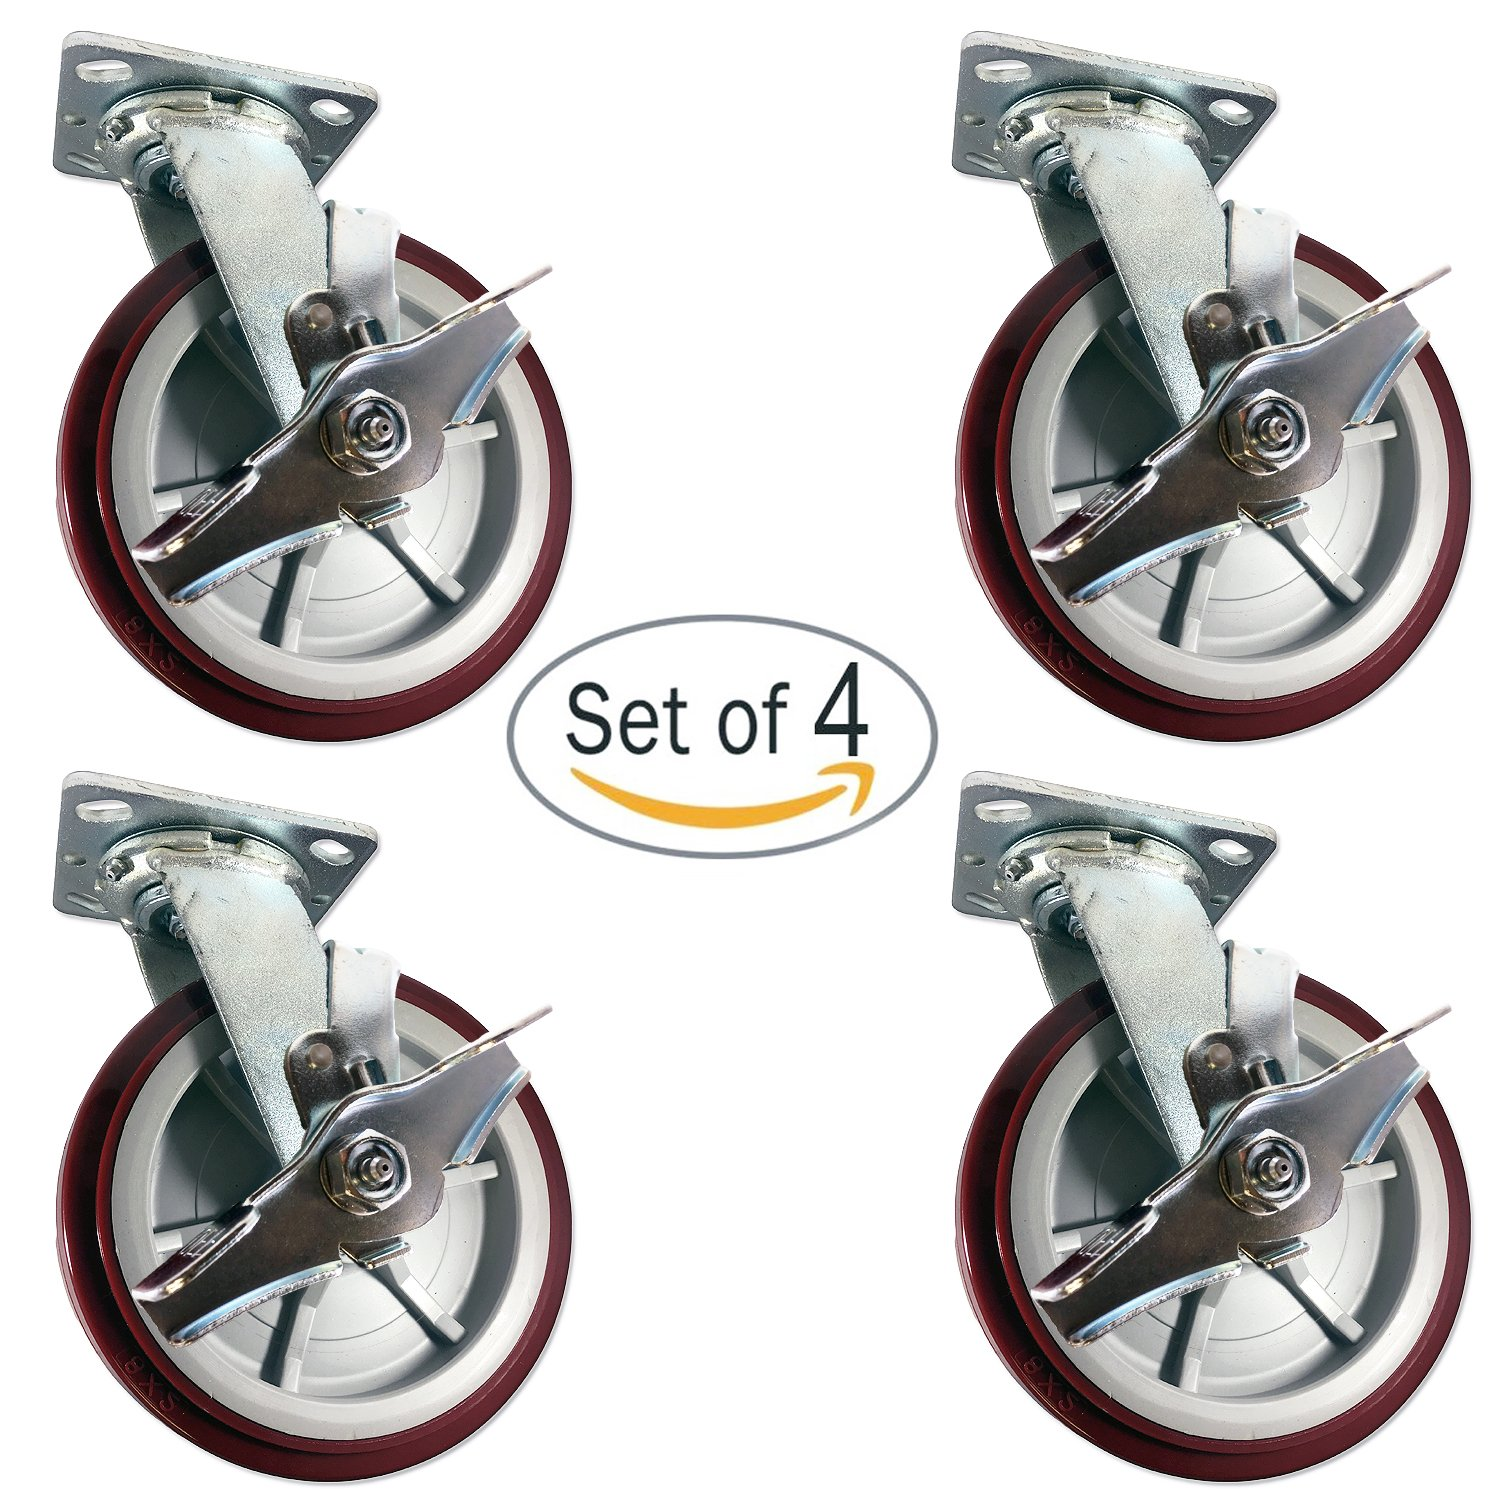 CasterHQ - 8'' X 2'' Swivel Caster Heavy Duty Polyurethane Wheel W/ Brakes 950lbs Each - Set of (4) Tool Box